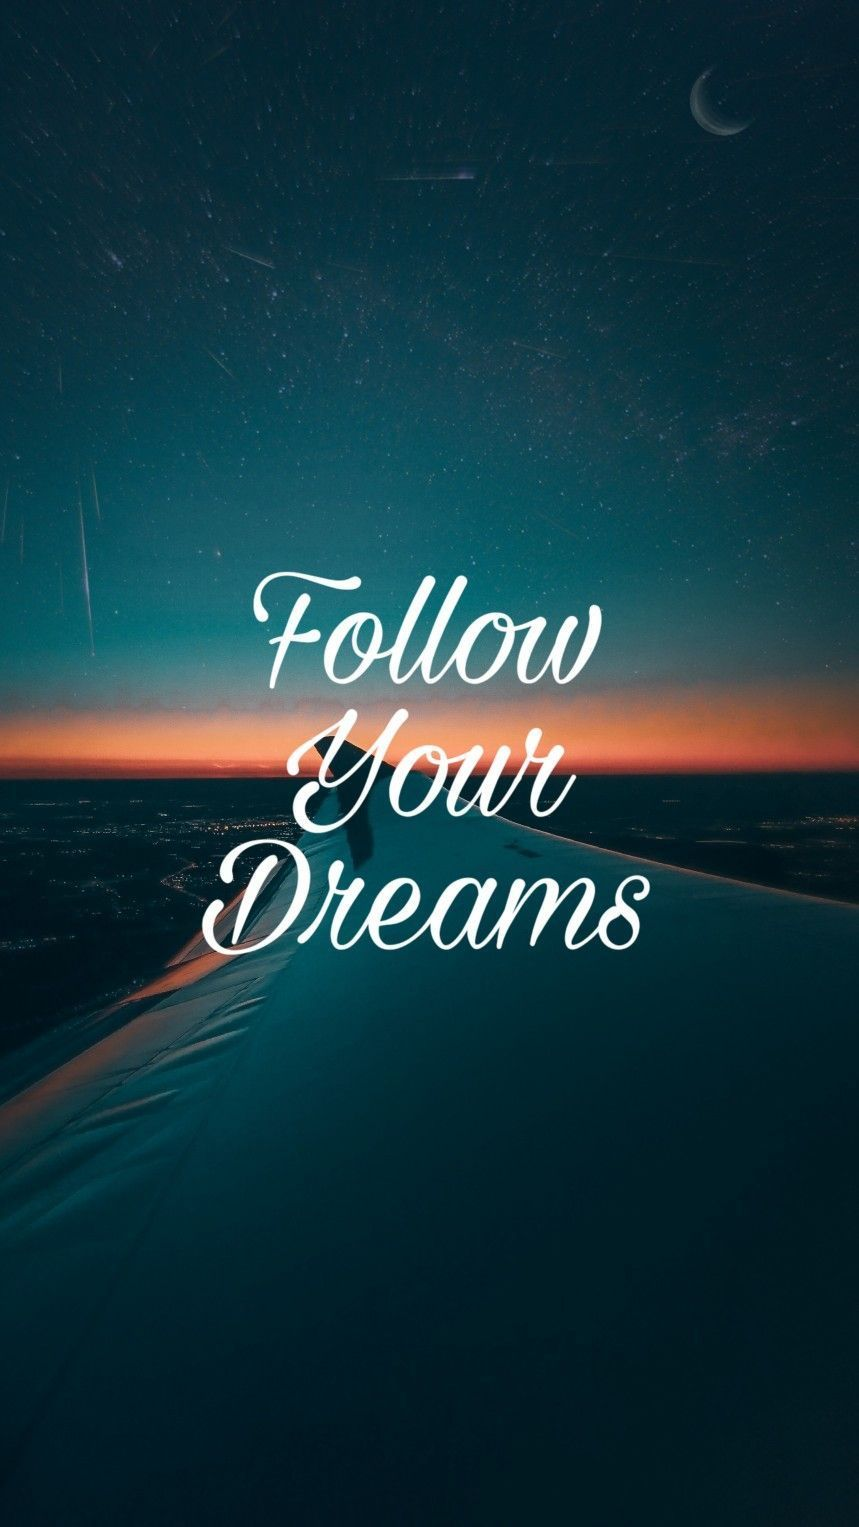 Dream Quotes Wallpapers   Wallpaper Cave